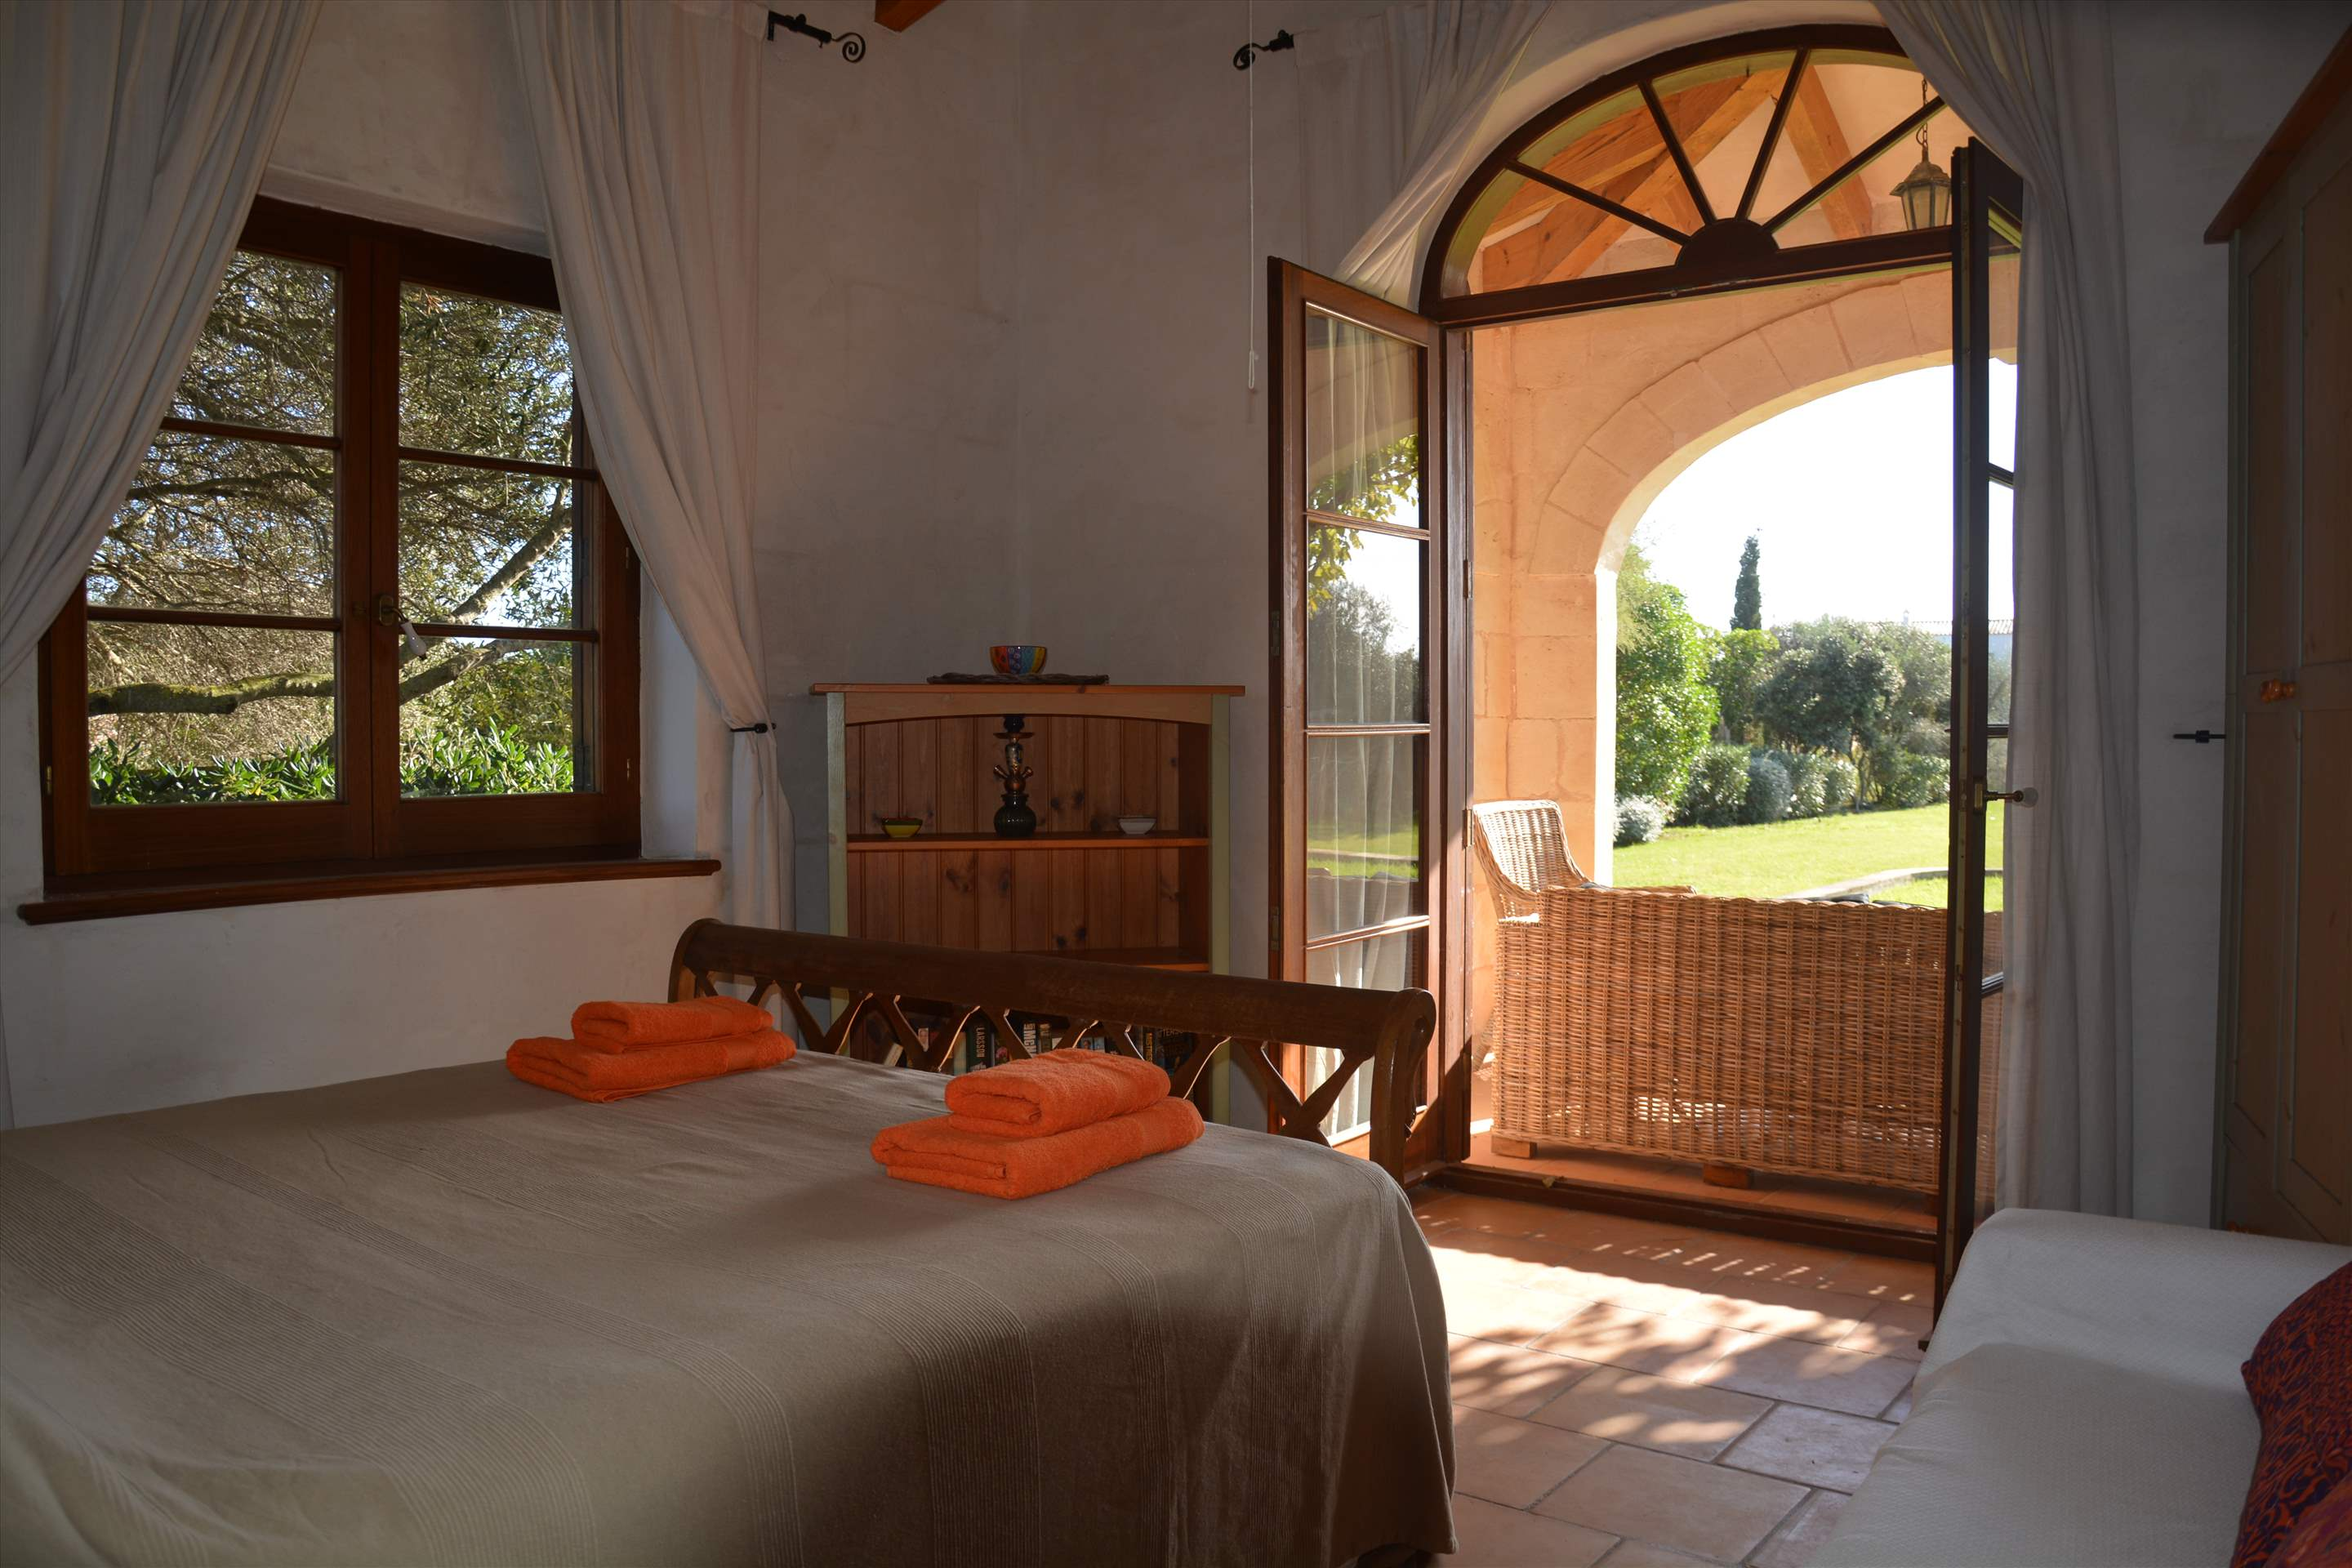 Les Arcs, 5 bedroom villa in Mahon, San Luis & South East, Menorca Photo #27